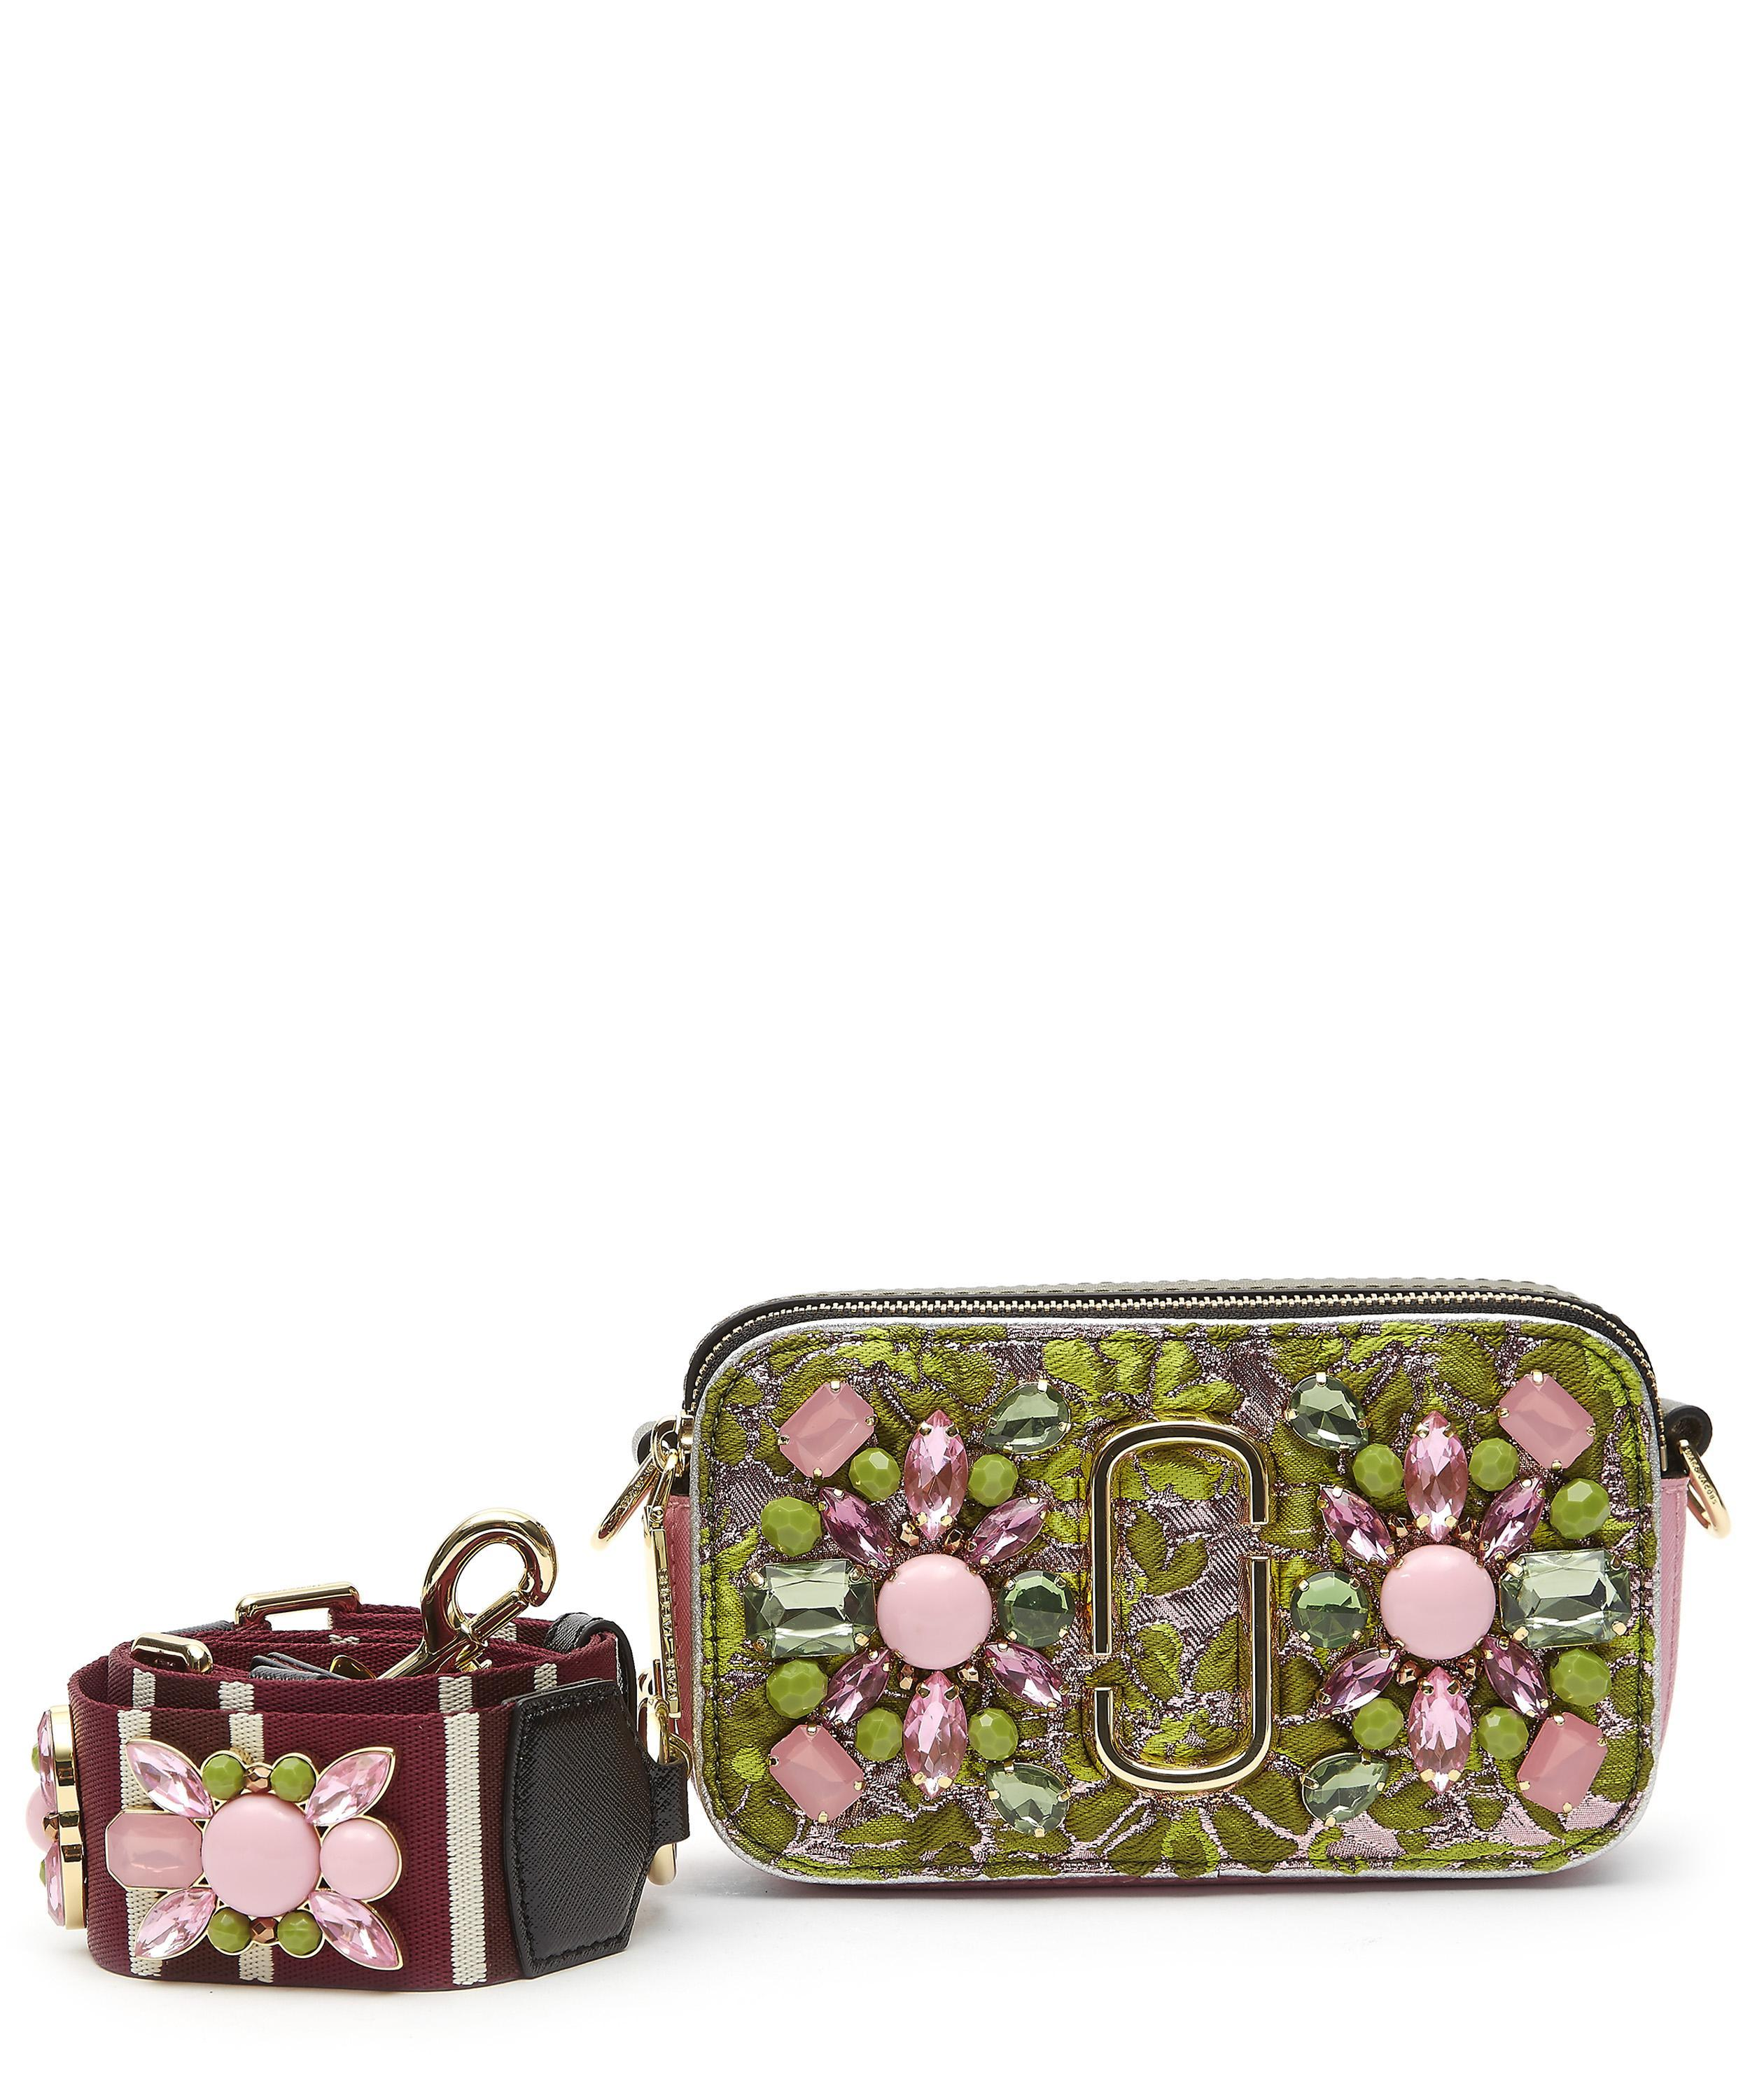 VIDA Statement Clutch - etno5 by VIDA svlYMCW0T0